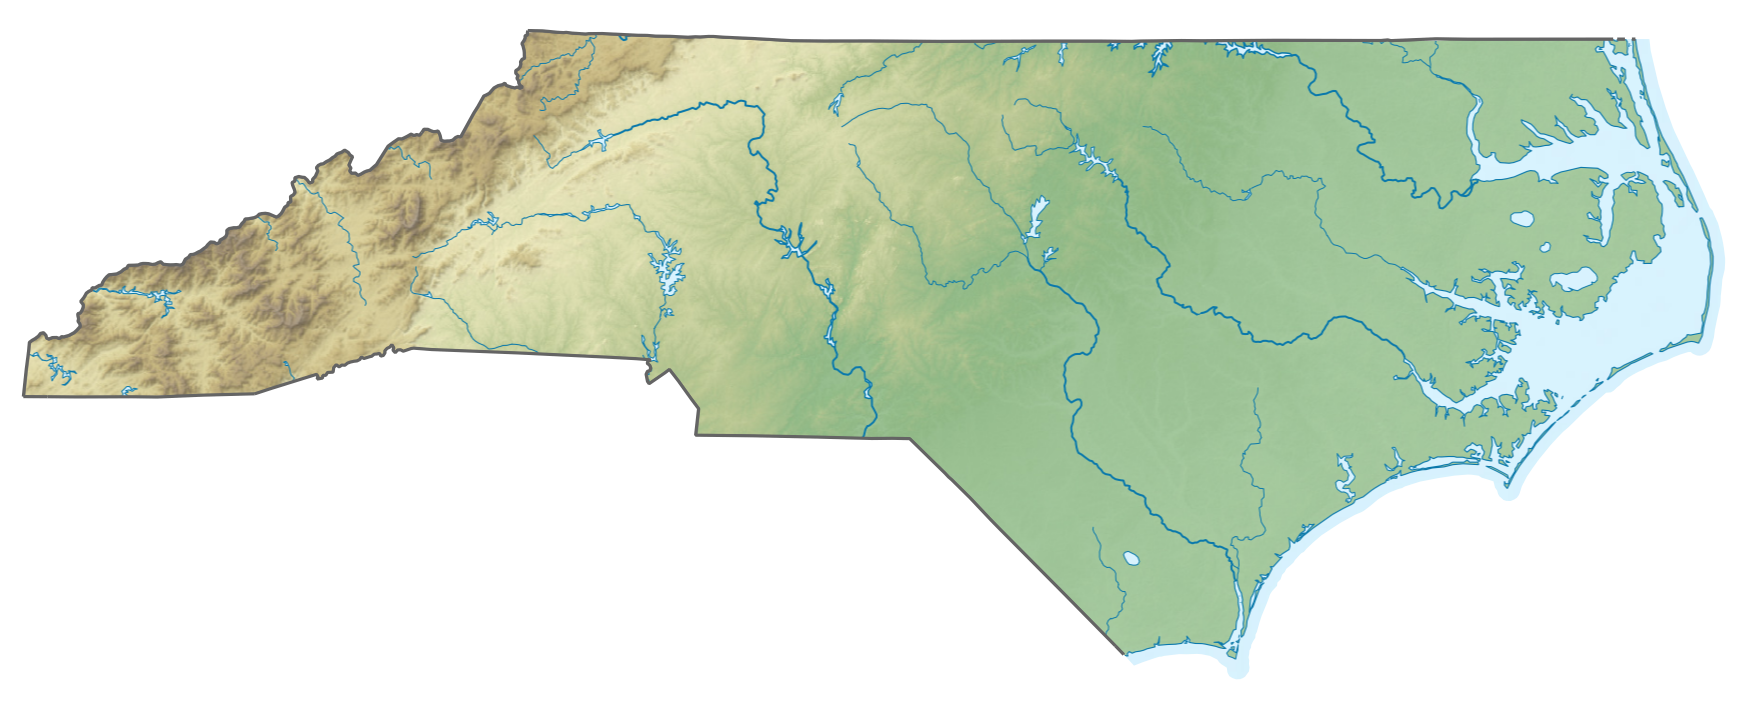 Datei:USA North Carolina relief map cut.png – Wikipedia